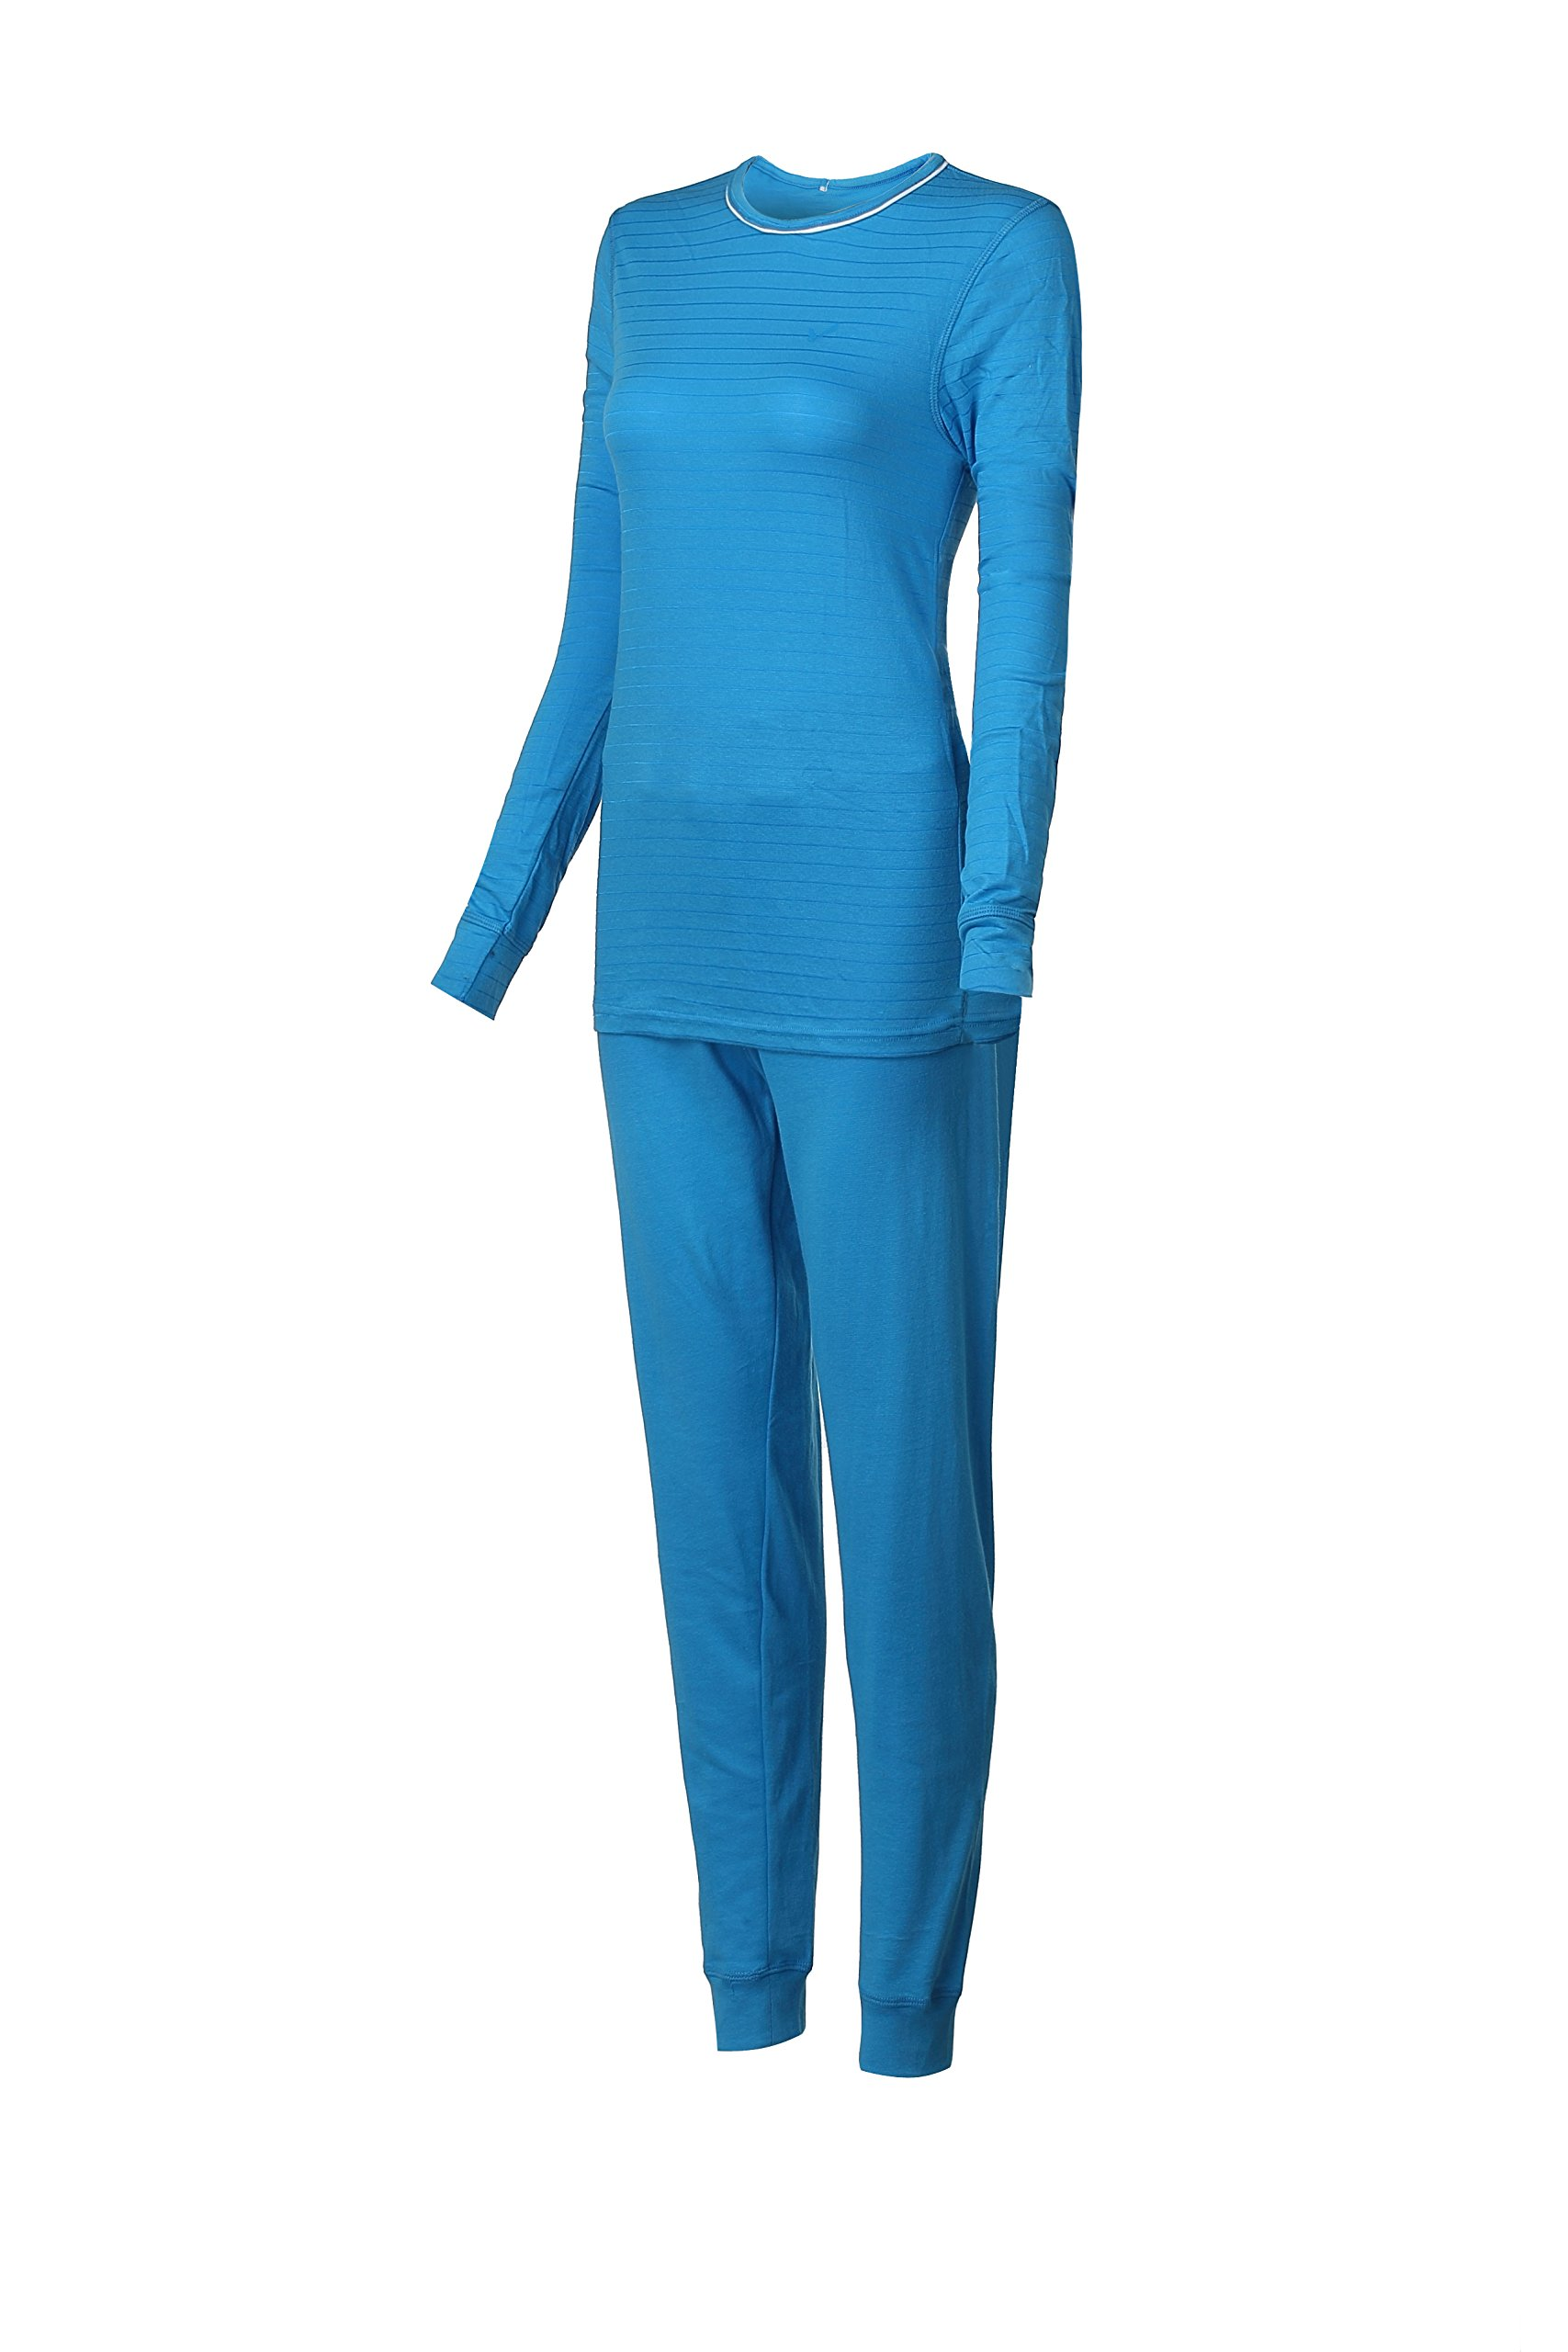 2 Piece Set Top and Bottom Ladies Ski Long Johns Thermal Underwear (X-Large, Turquiose)